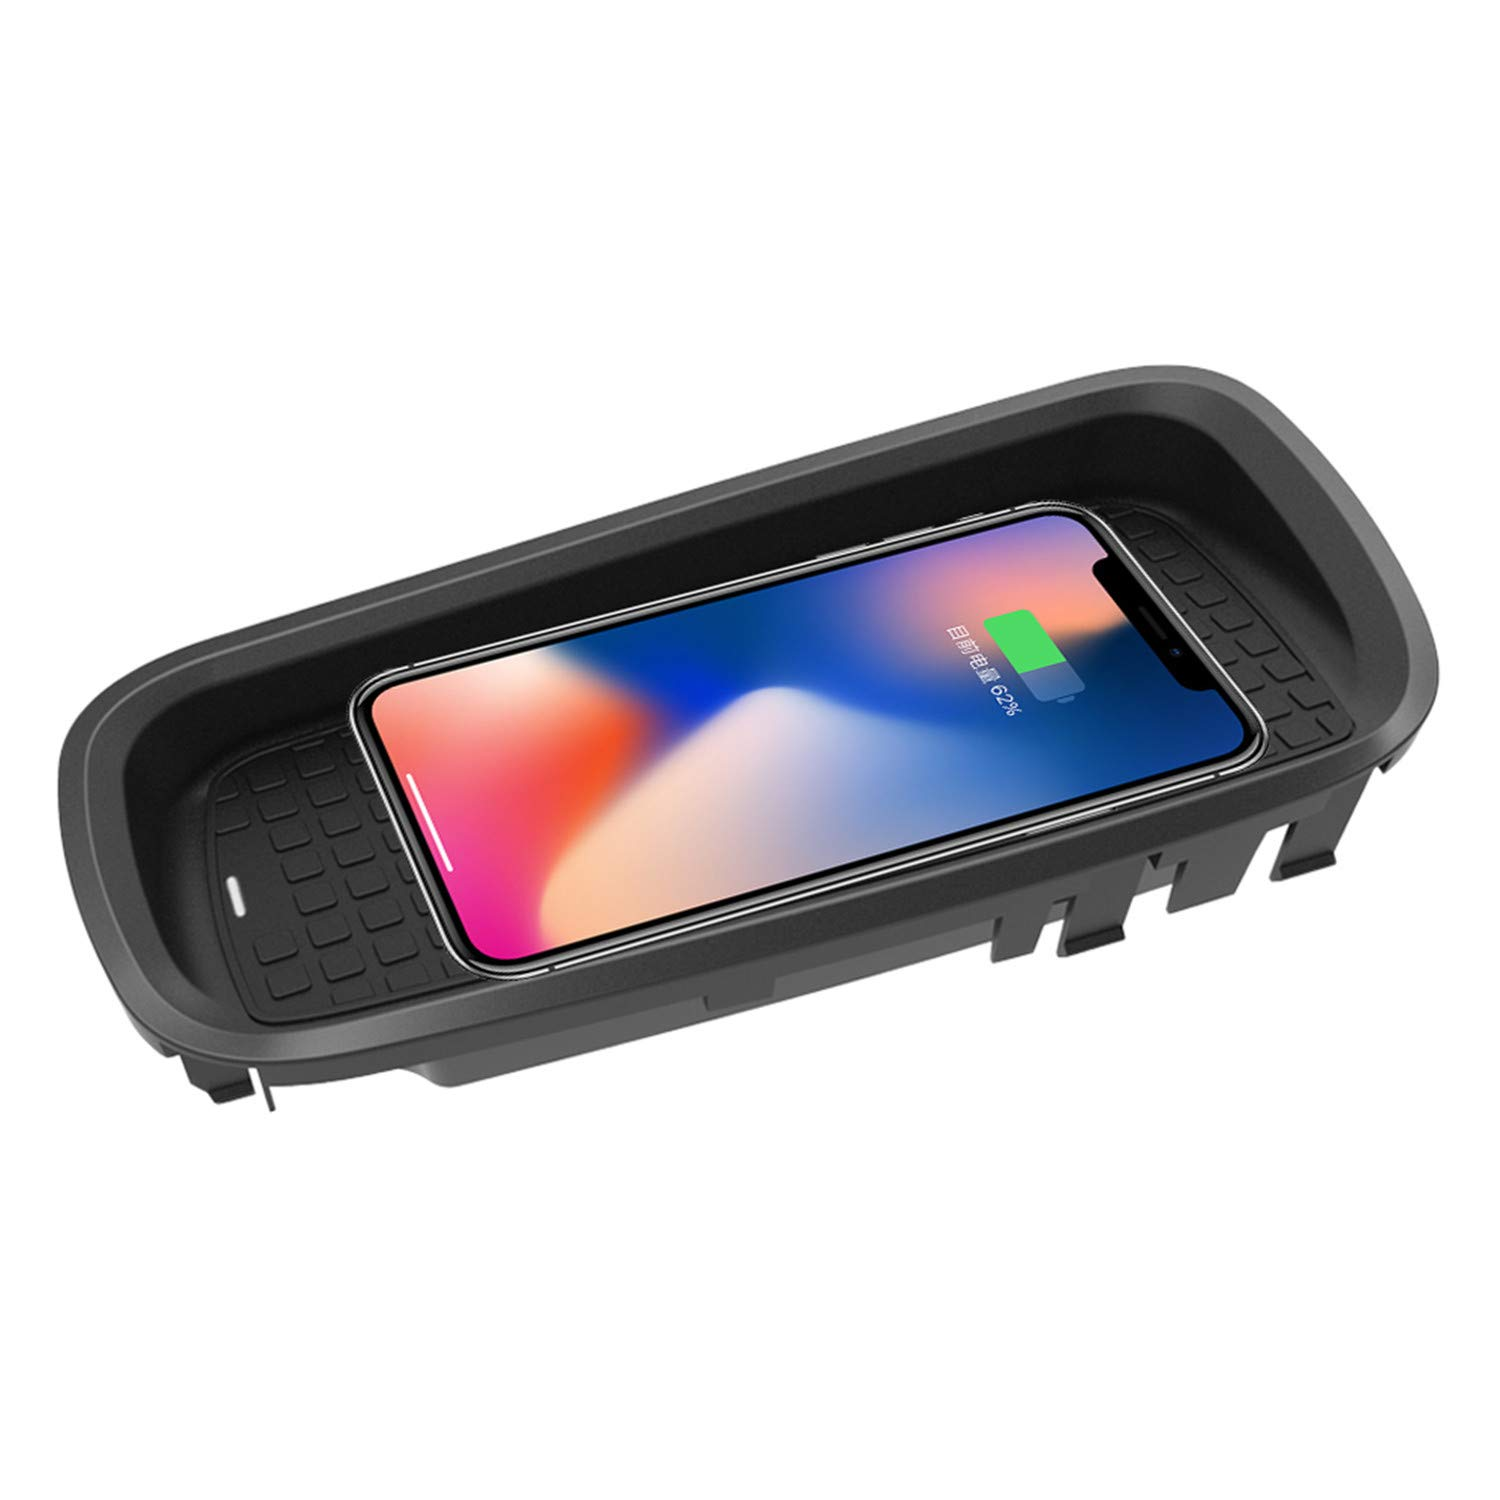 ZWNAV Wireless Car Charger Mount for Lexus CT 2015-2017, Qi Certified, 10W Fast Charging Compatible with iPhone XS/XR/X/8/8+, Samsung S9+ /S9 /S8/S7/Note 8 and Qi Enabled Devices